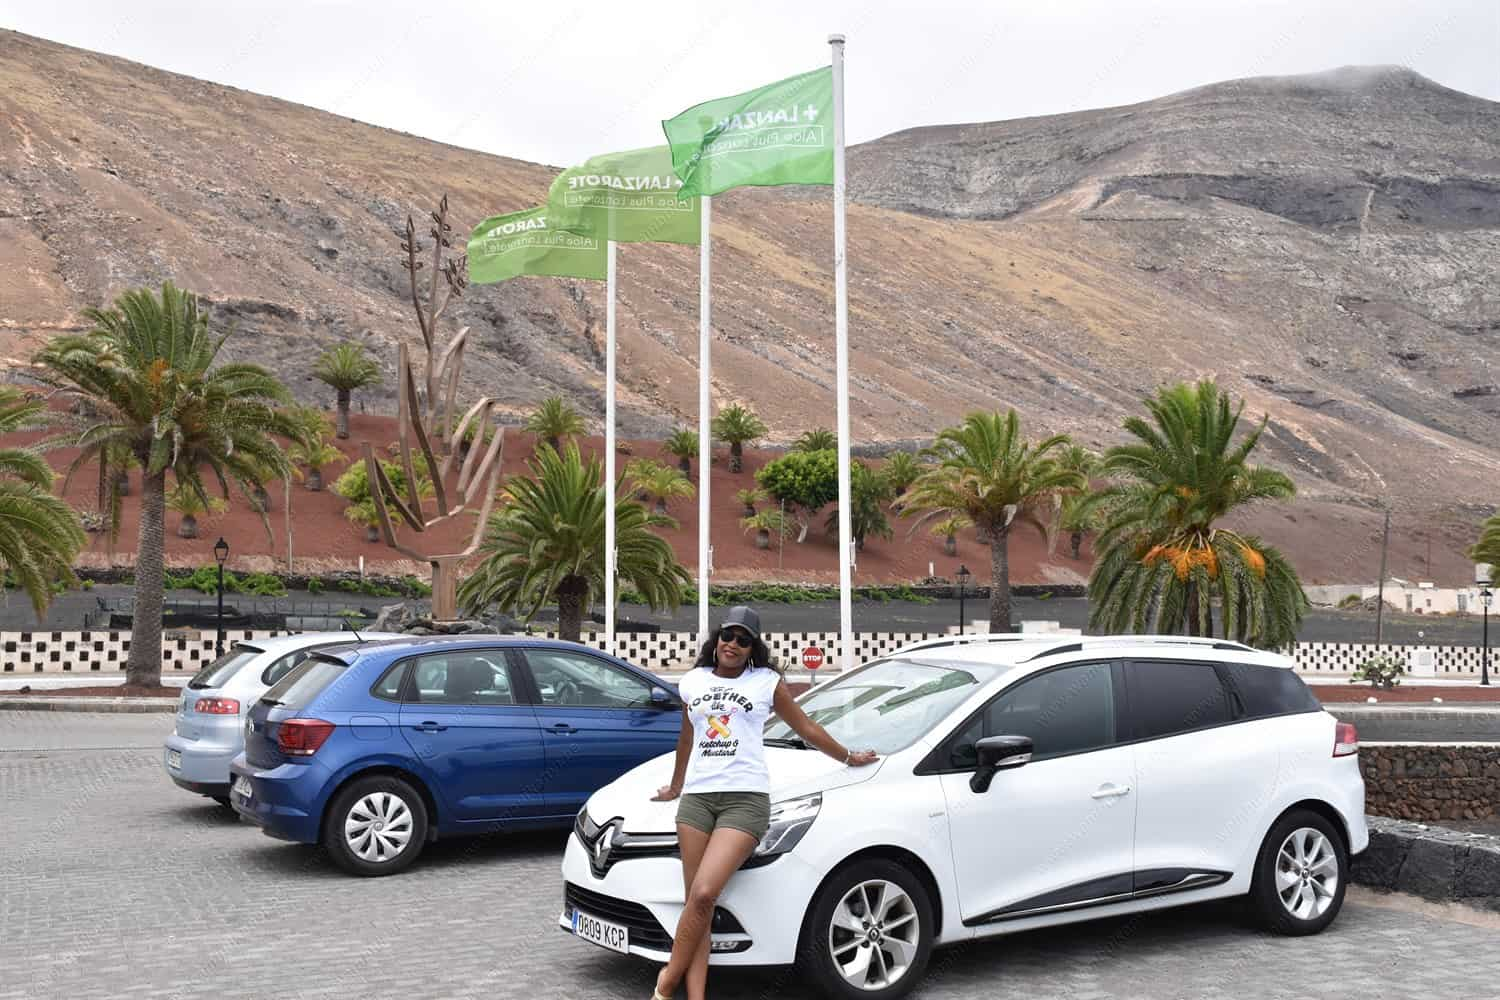 Rental Cars in Lanzarote